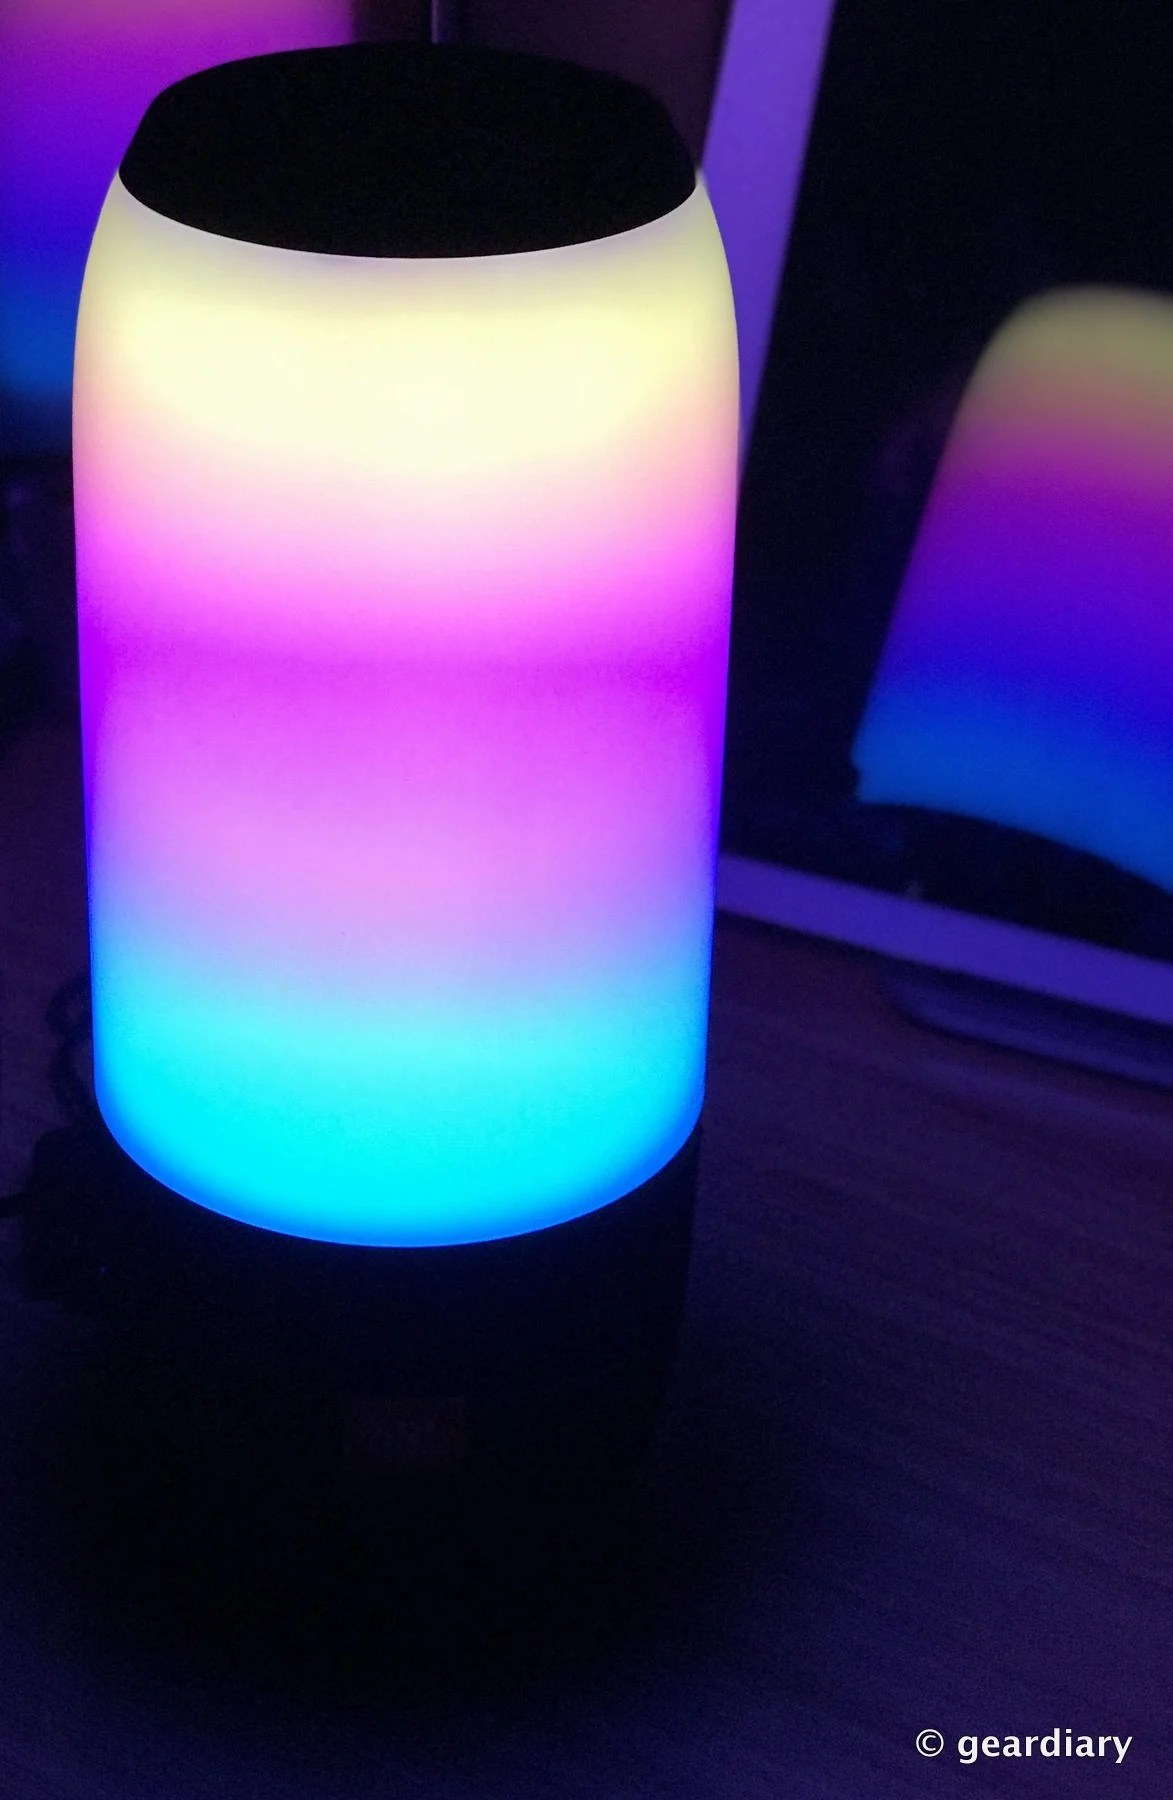 JBL Pulse 3 Portable Bluetooth Speaker: A Grown Up Lava Lamp With Skills